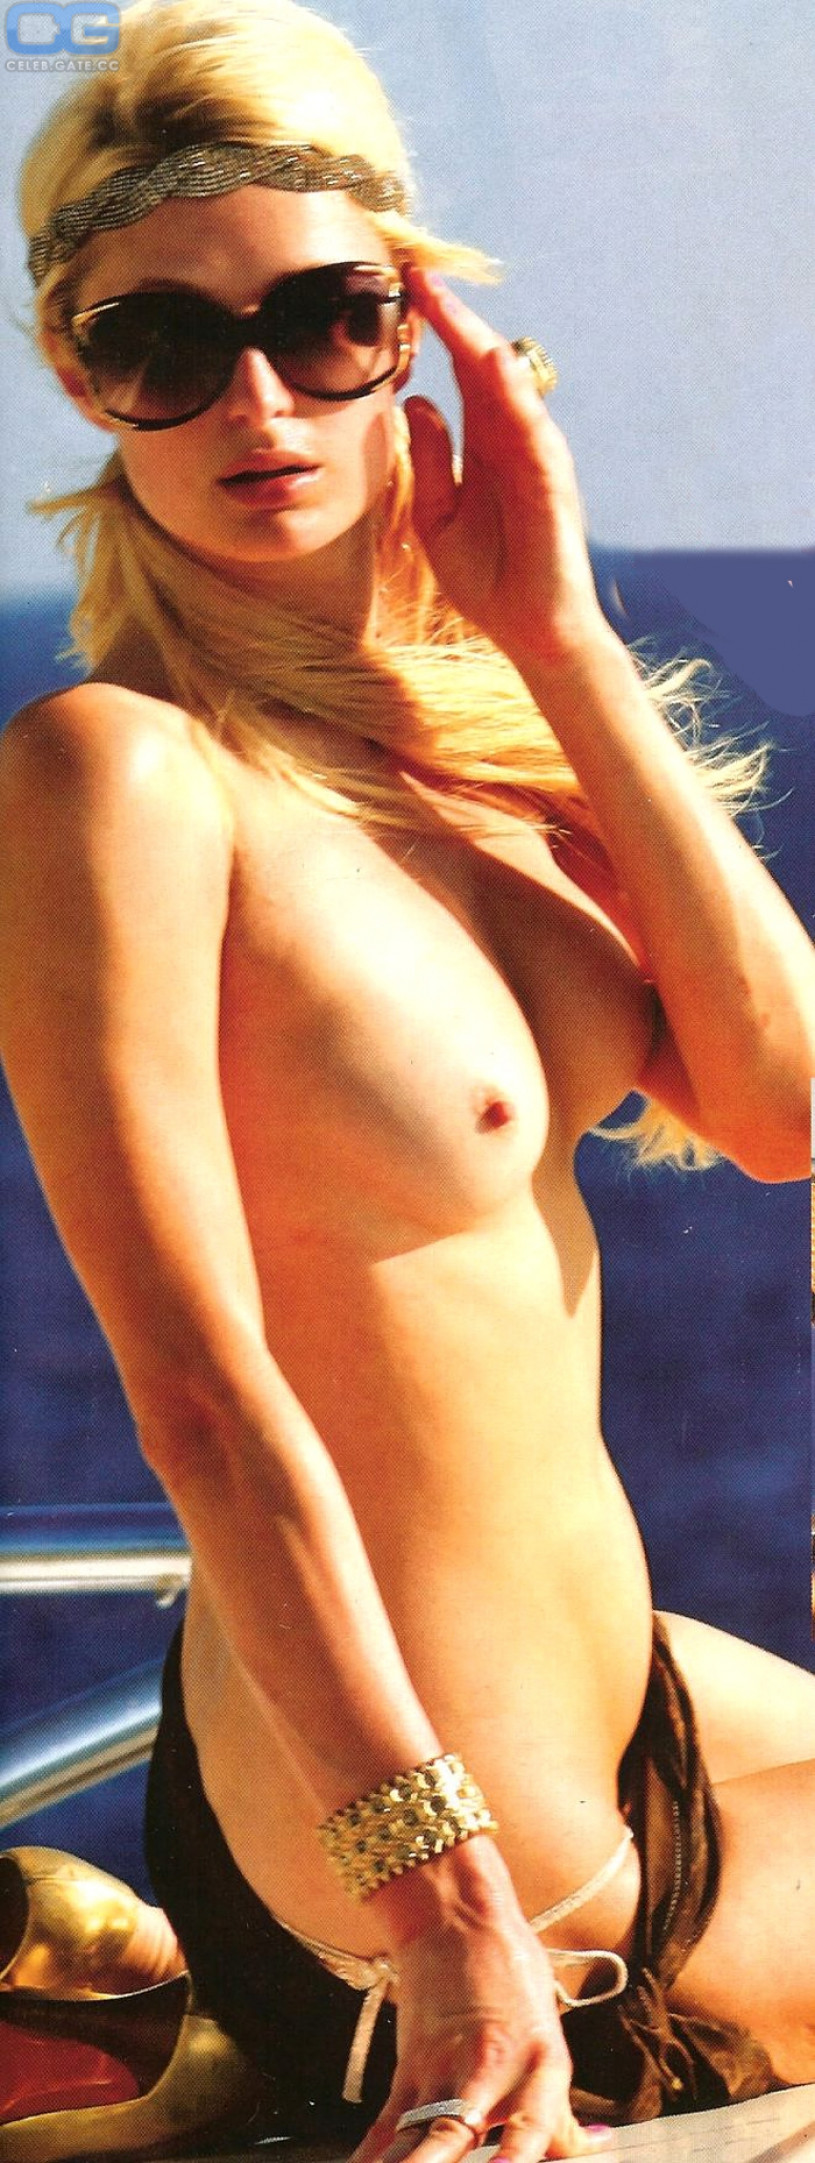 Topless Paris Hilton nudes (35 foto and video), Topless, Paparazzi, Instagram, butt 2020